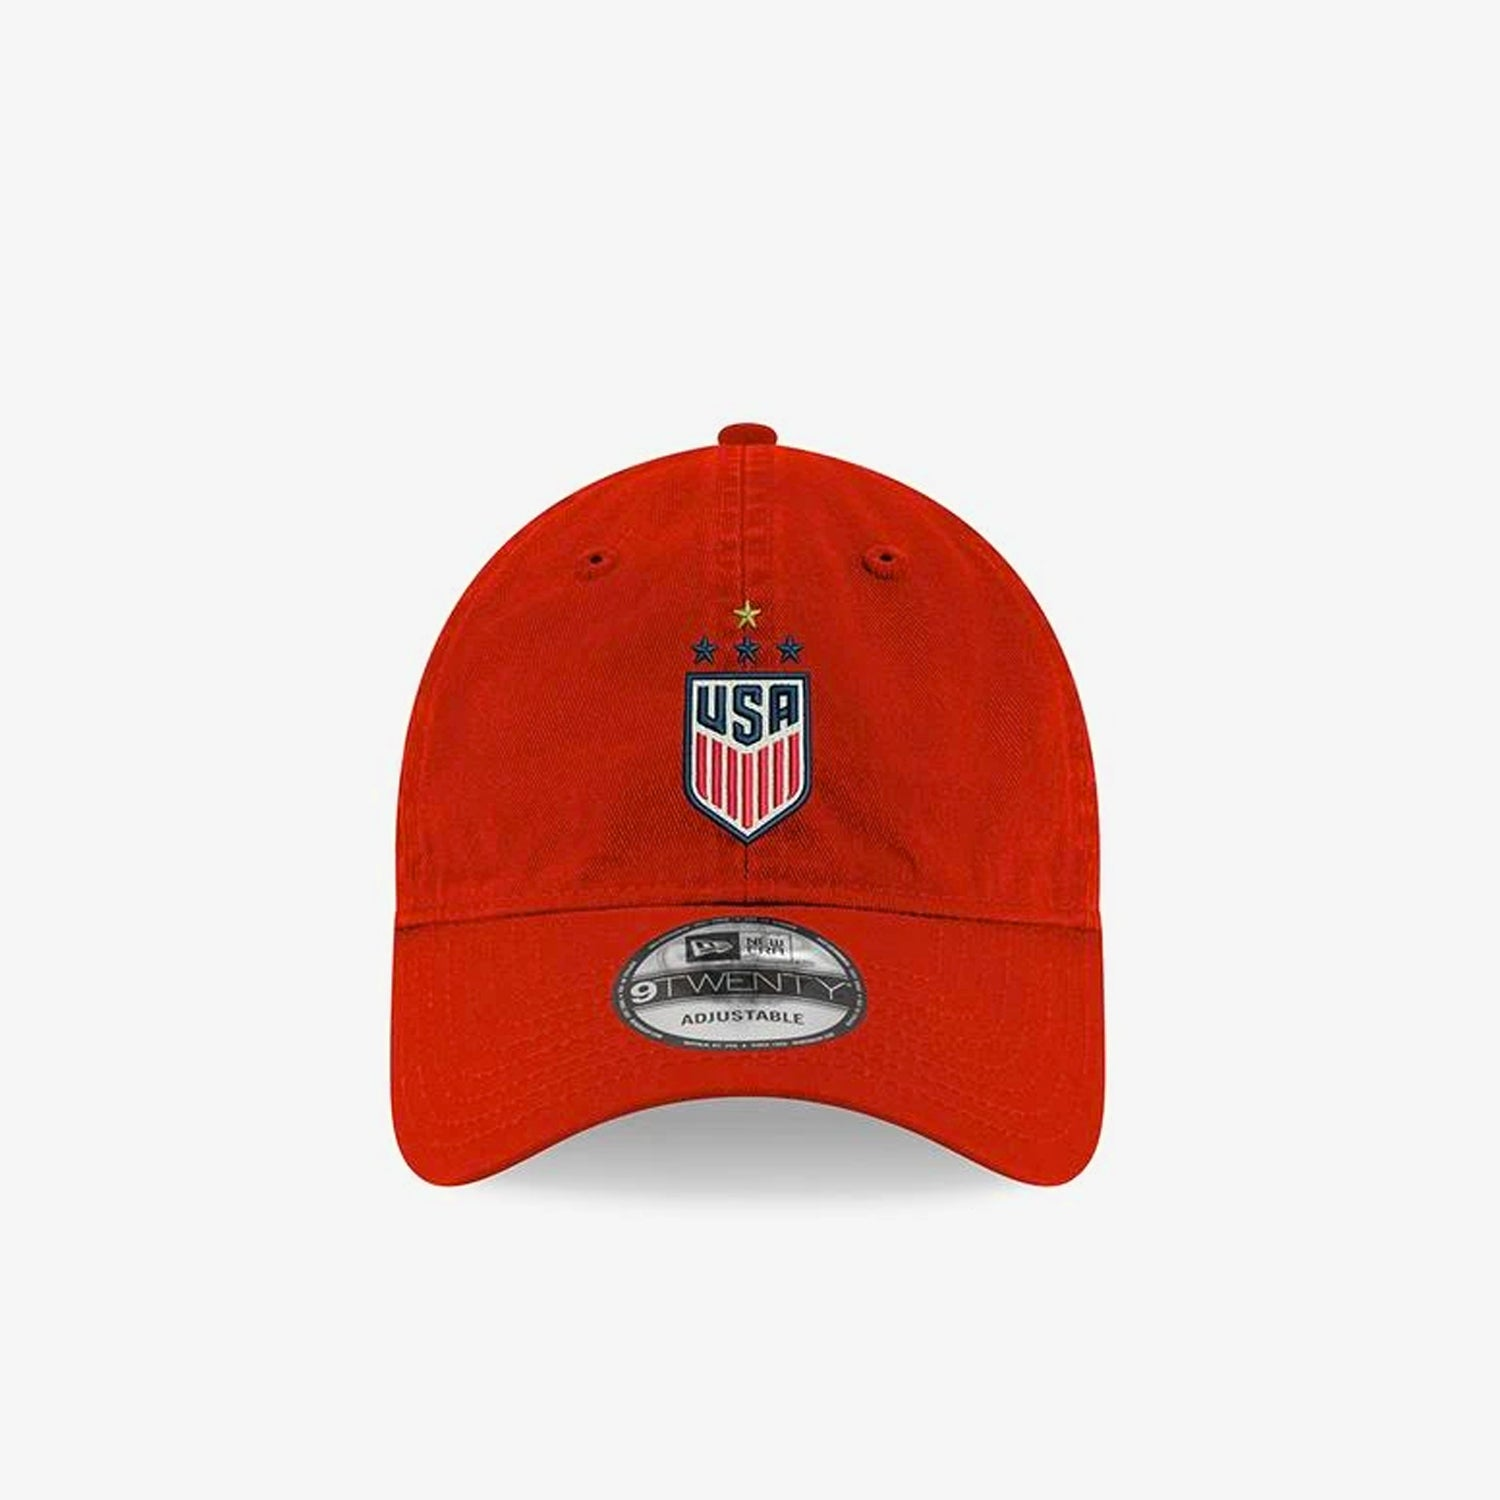 USA Women's 4-Star Adjustable Hat - Red